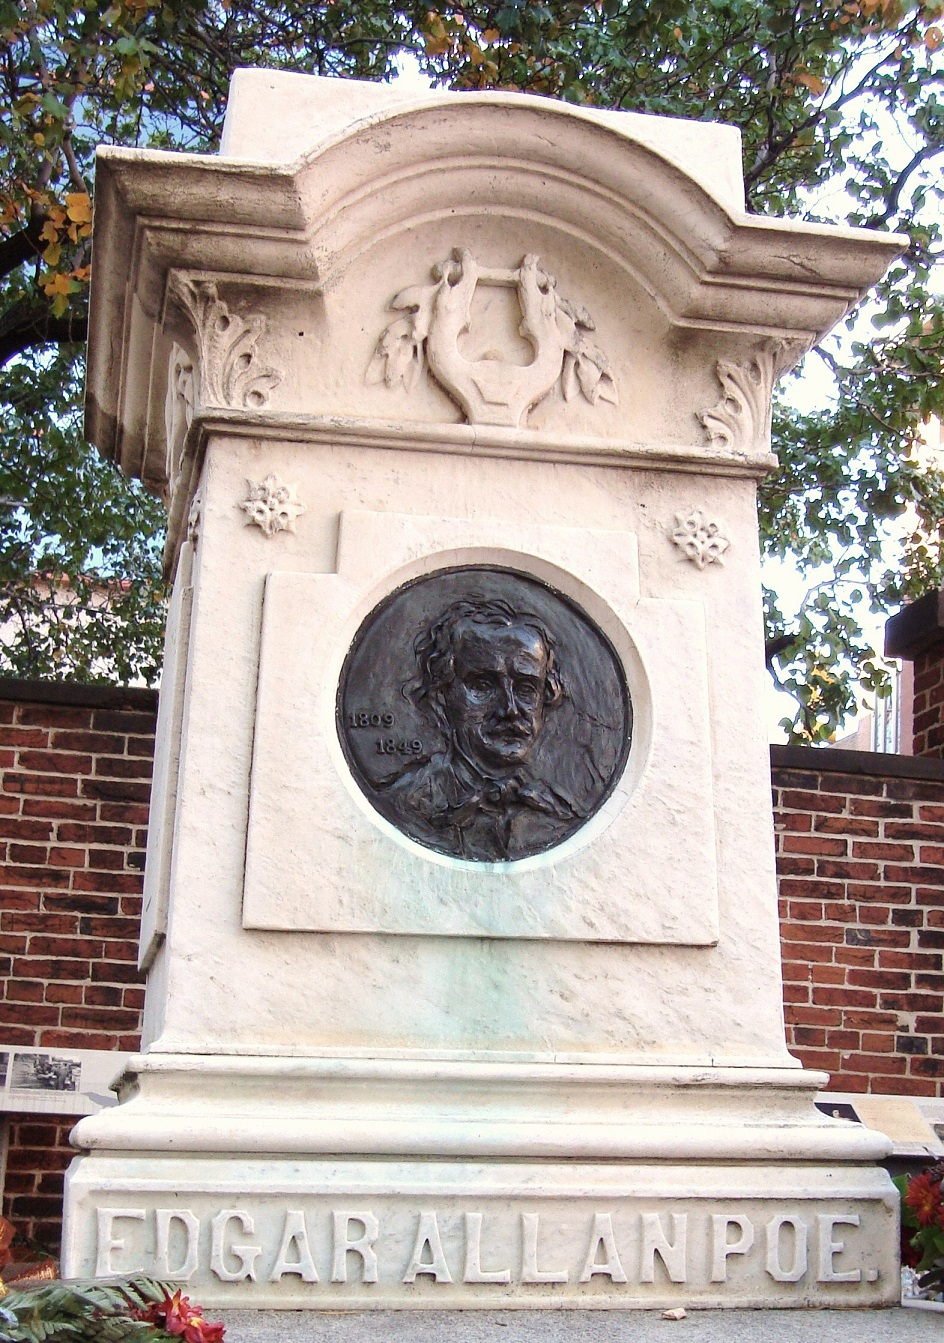 Edgar Allan Poe's Grab auf dem Westminster Burial Ground in Baltimore